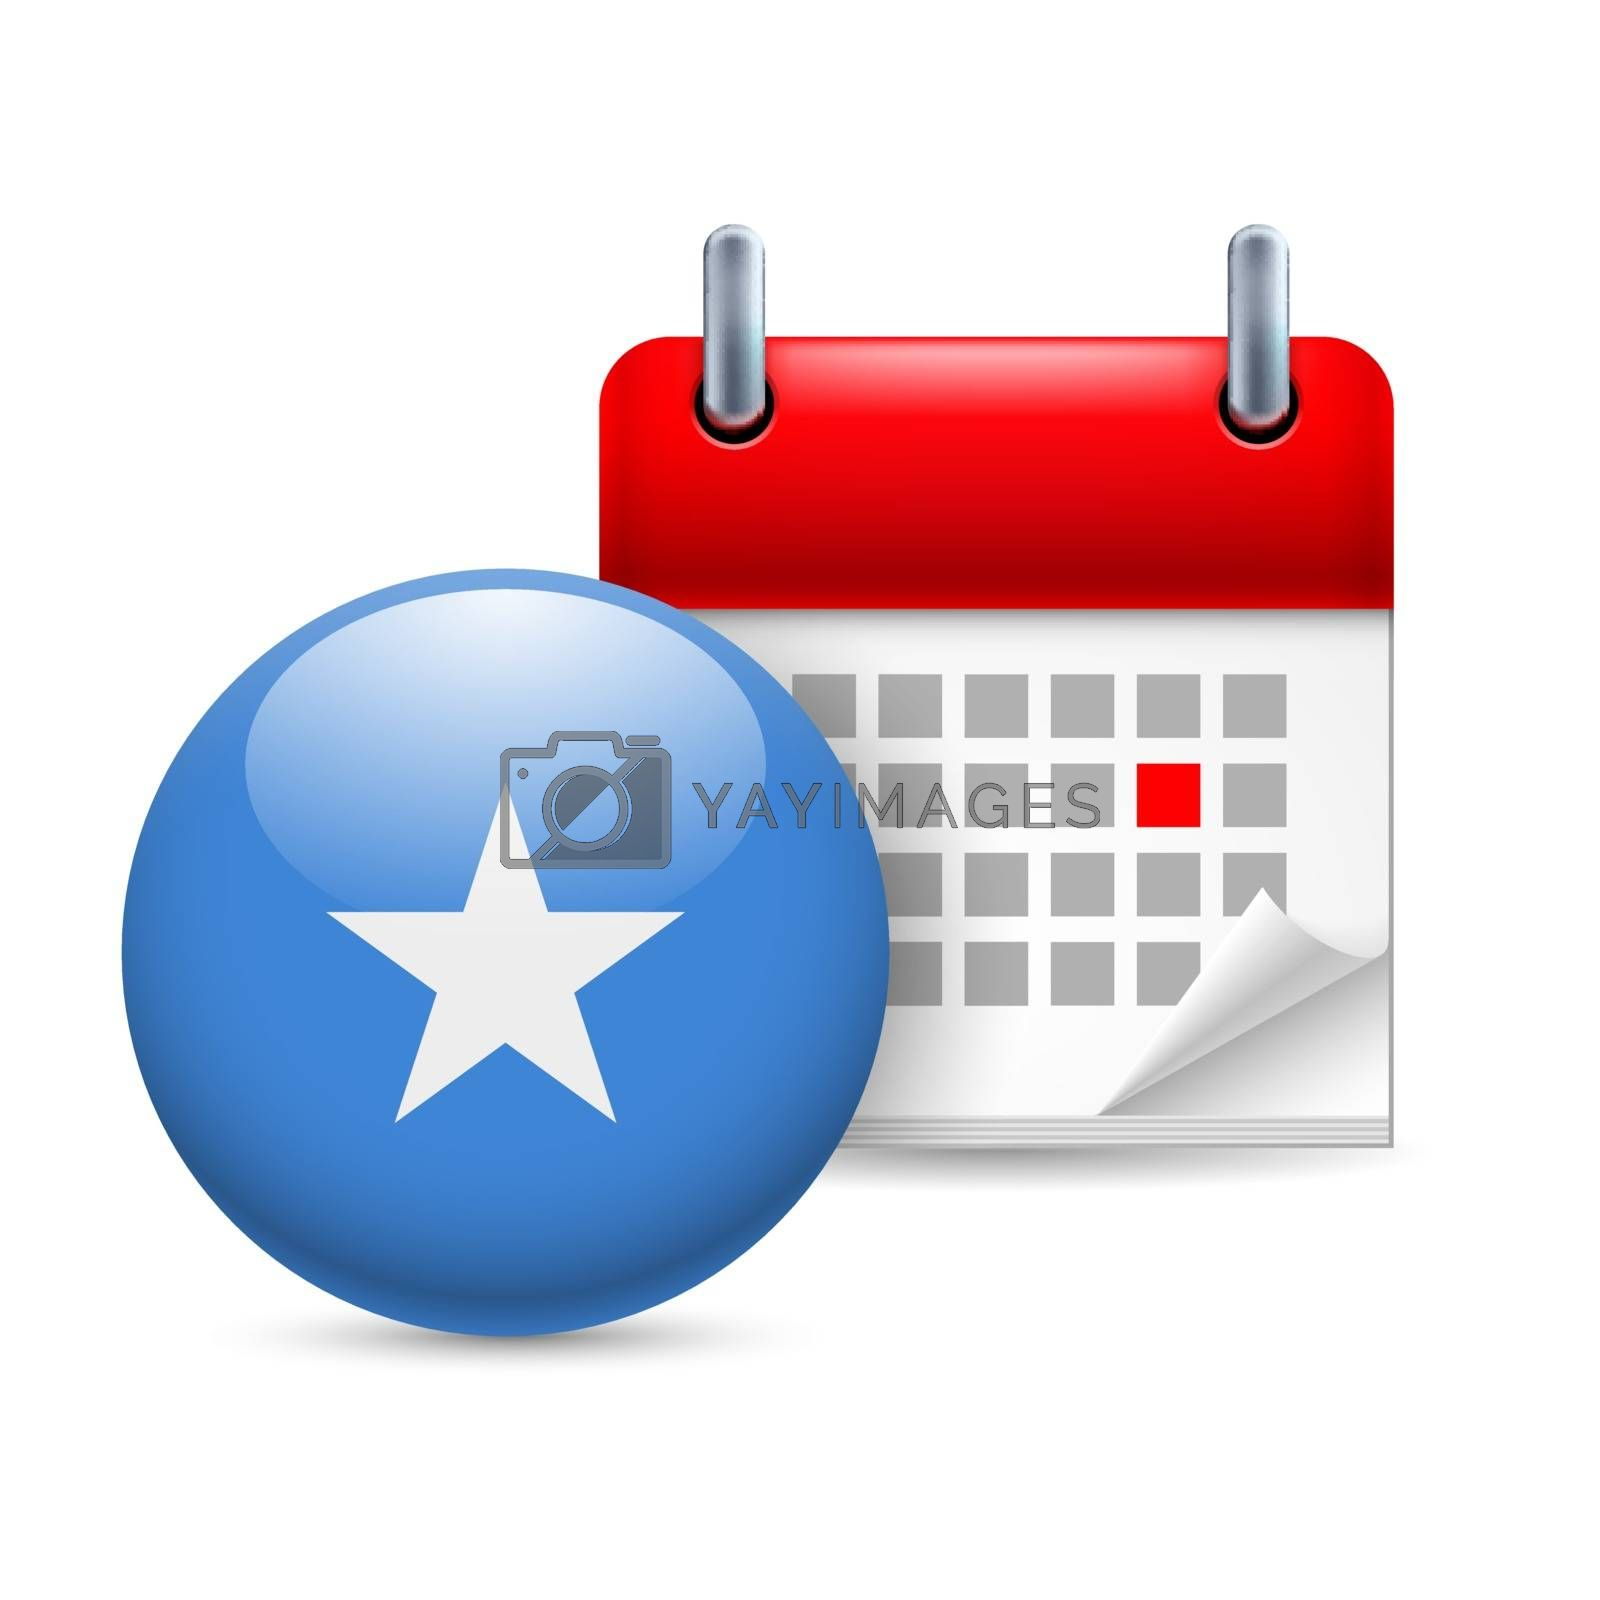 Royalty free image of Icon of National Day in Somalia by dvarg